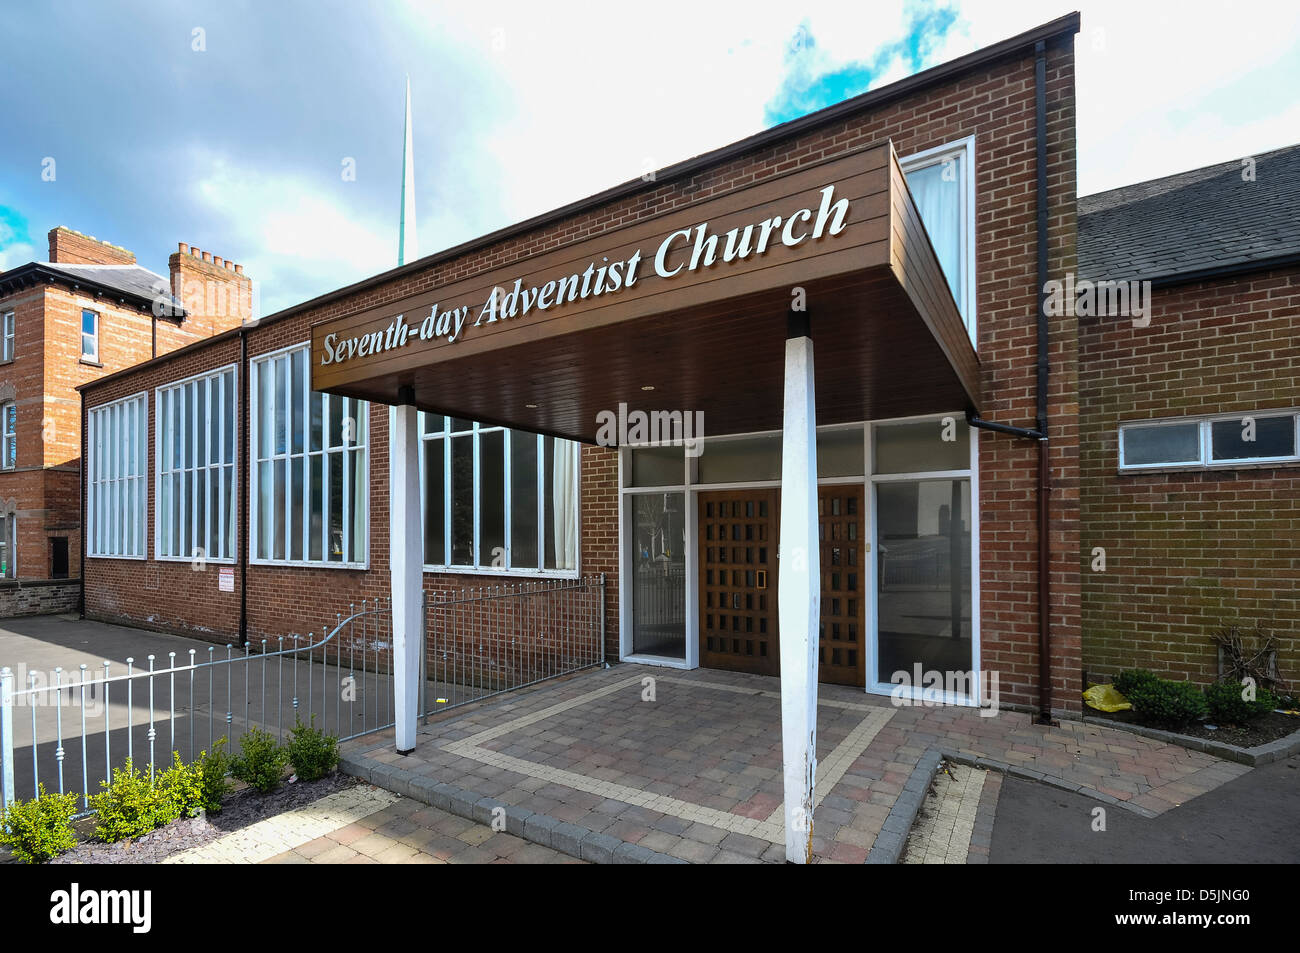 Seventh-day Adventist Church Stock Photo: 55116432 - Alamy